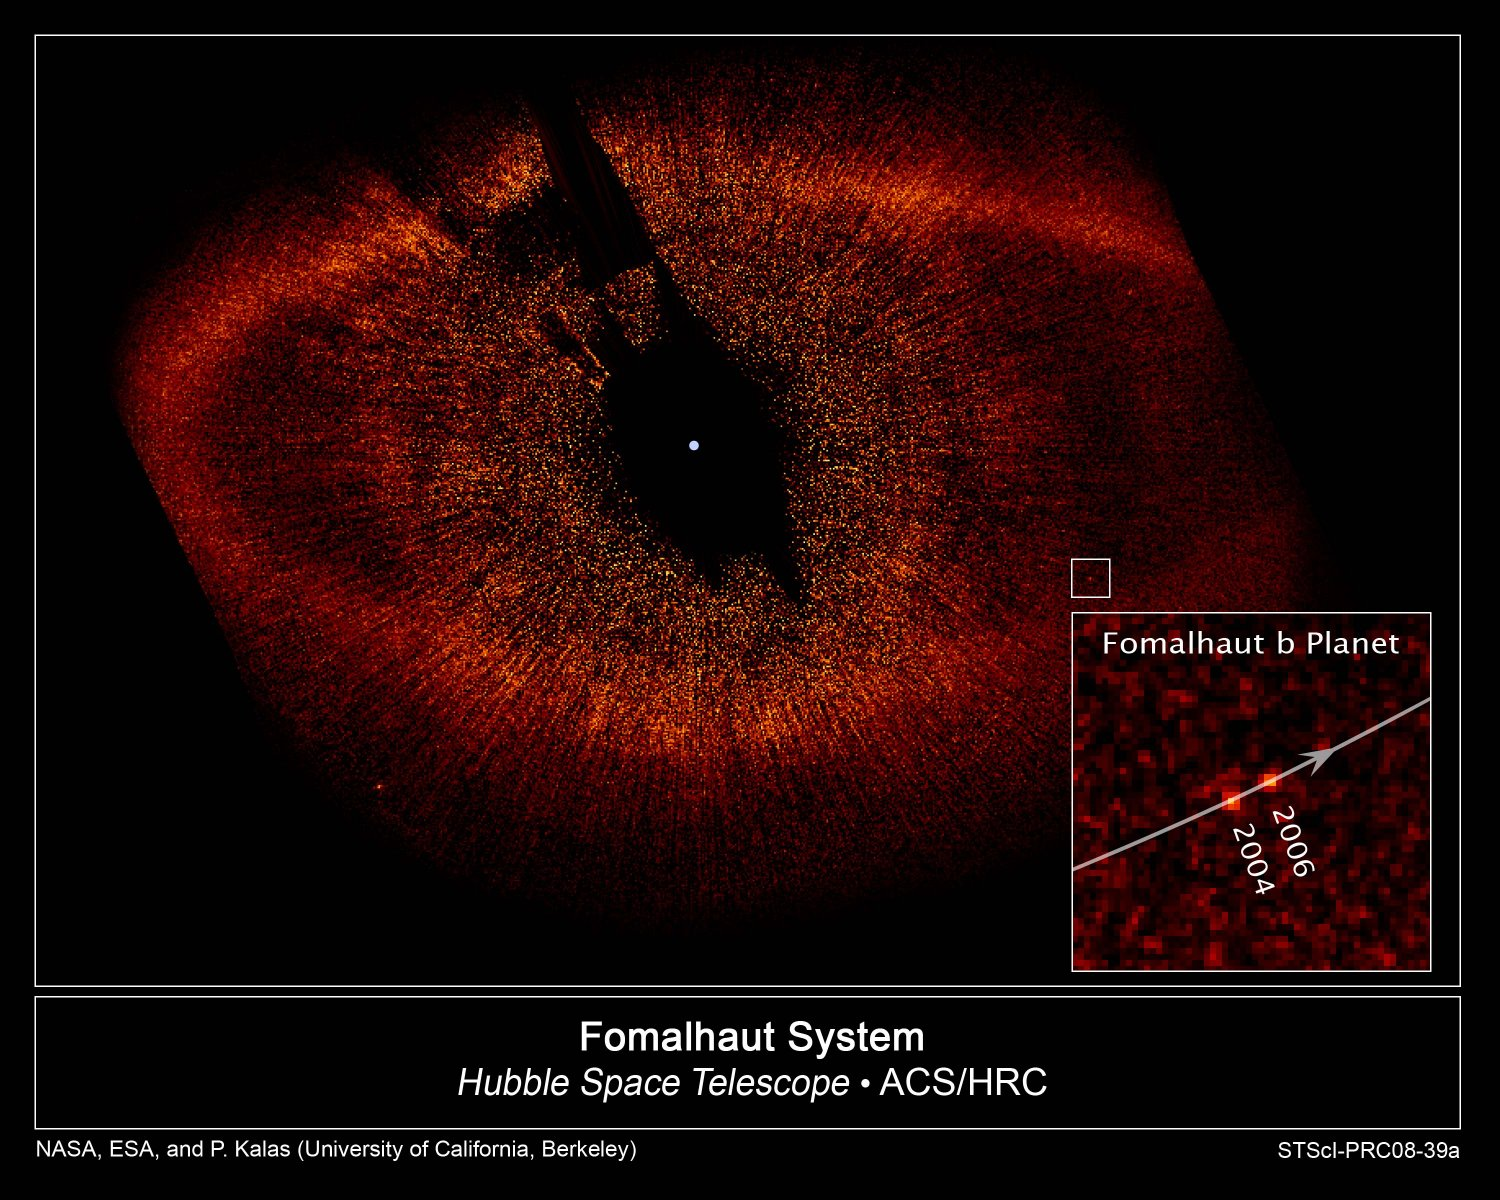 Previously claimed picture, image of the exoplanet Fomalhaut b